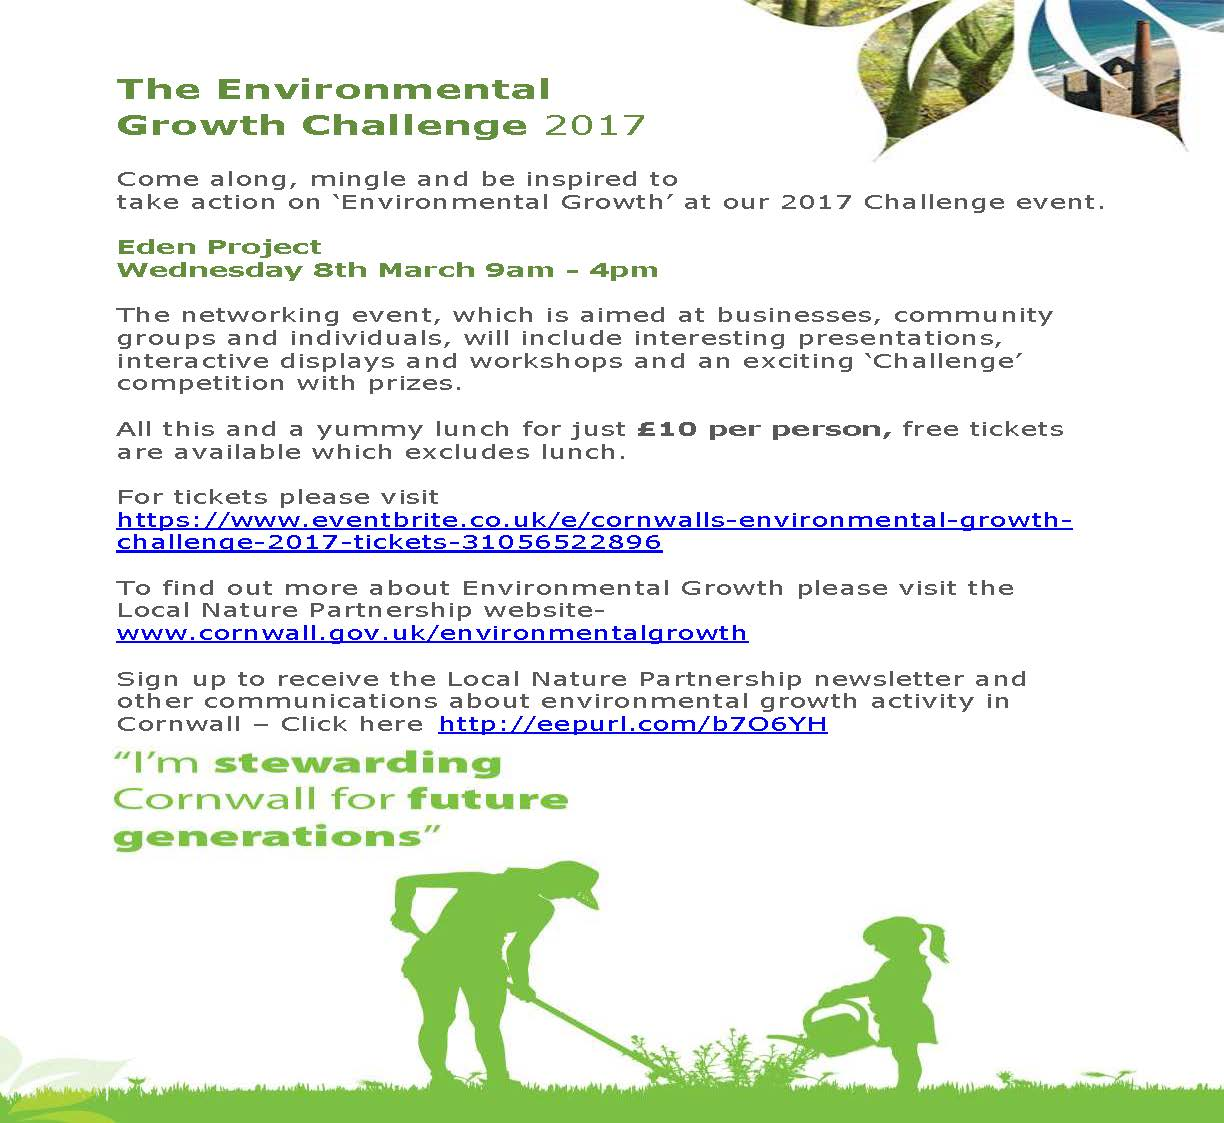 Environmental Growth Challenge – Eden Project – 8th March